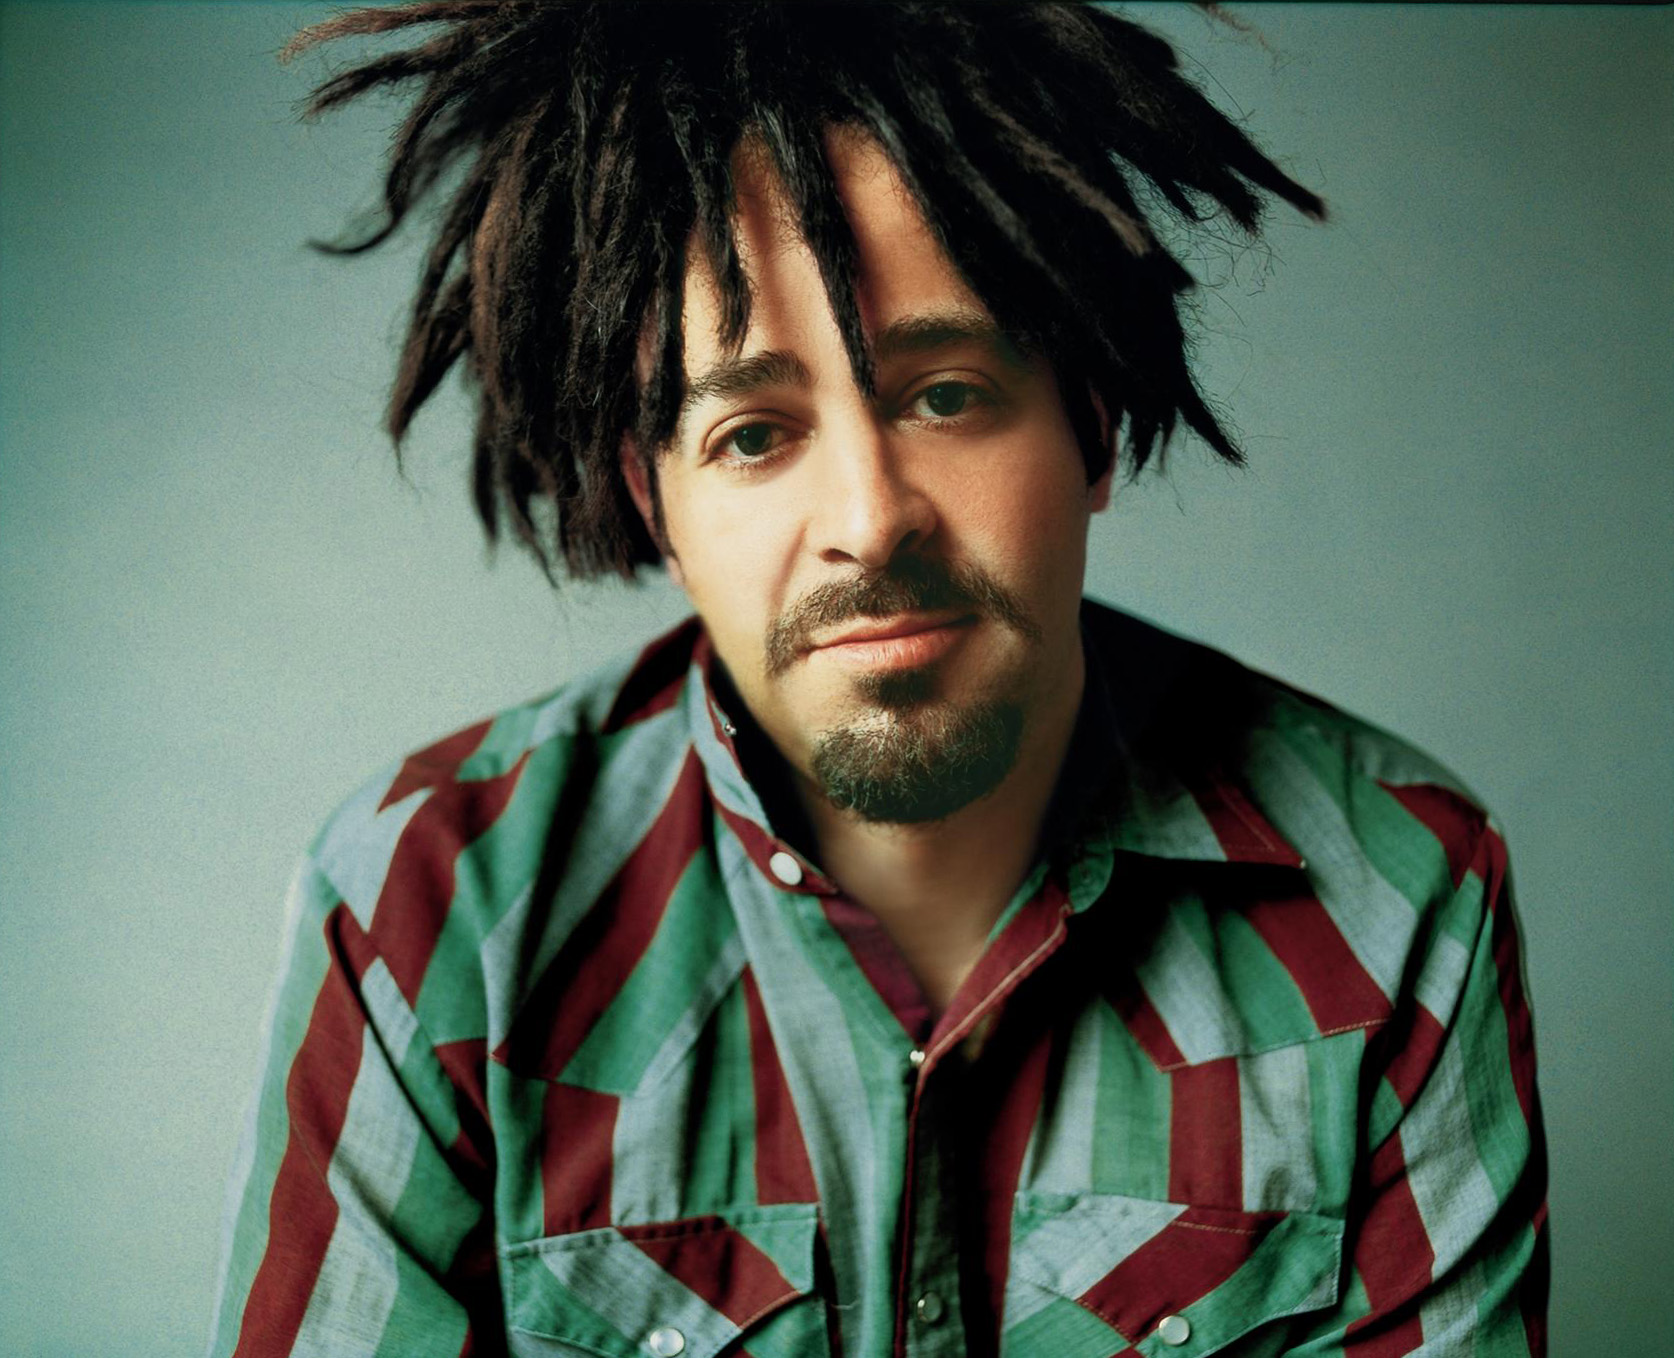 COUNTING CROWS Photo_adam2_300rgbcrop2